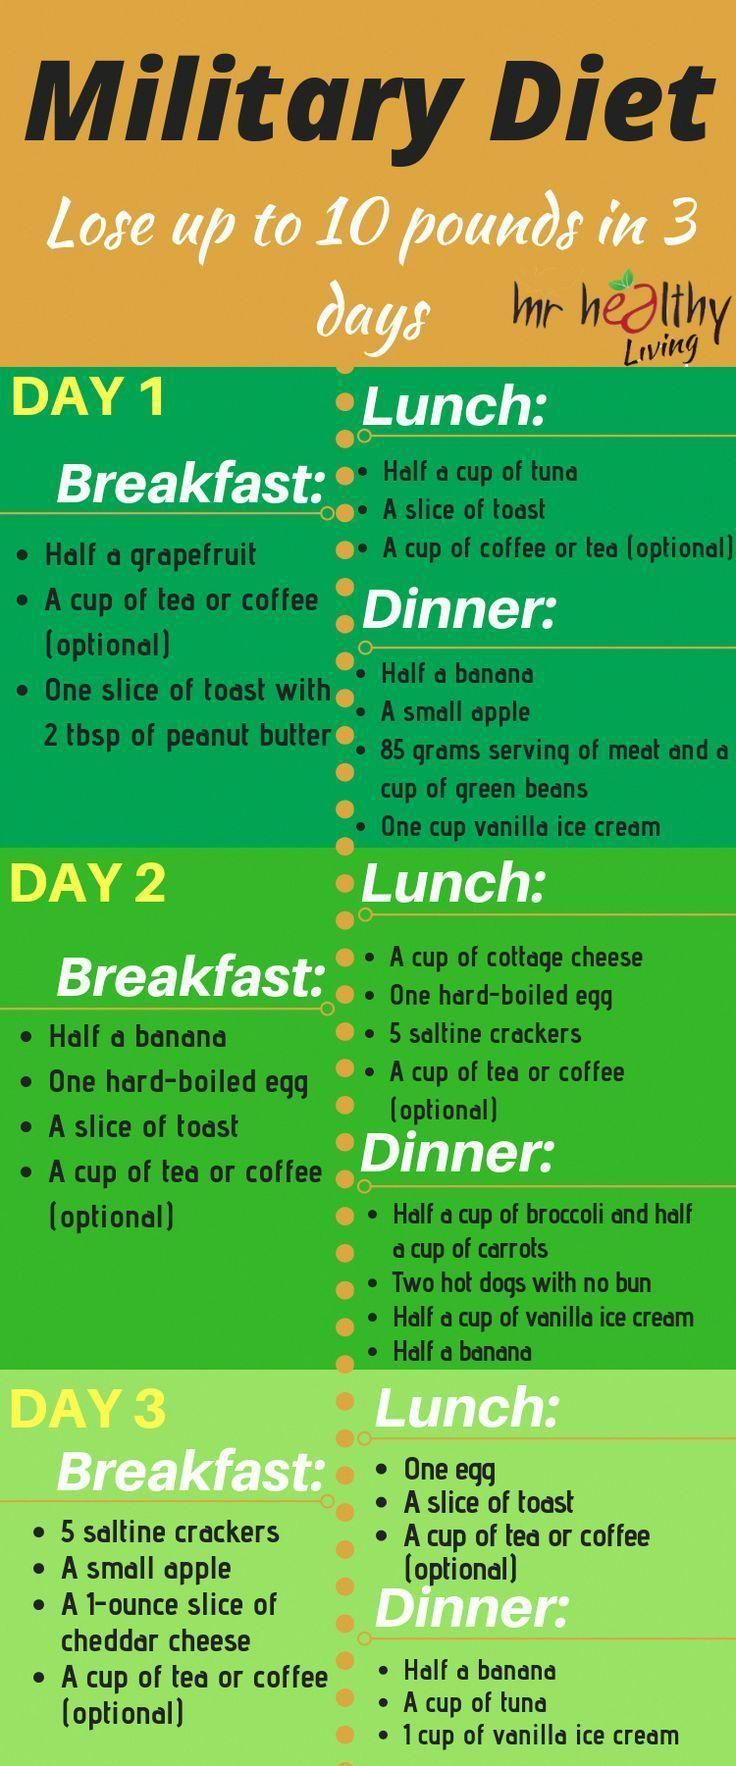 Military Diet Military Diet Before And After Military Diet Before And After I In 2020 Boiled Egg Diet Plan Military Diet Military Diet Before And After